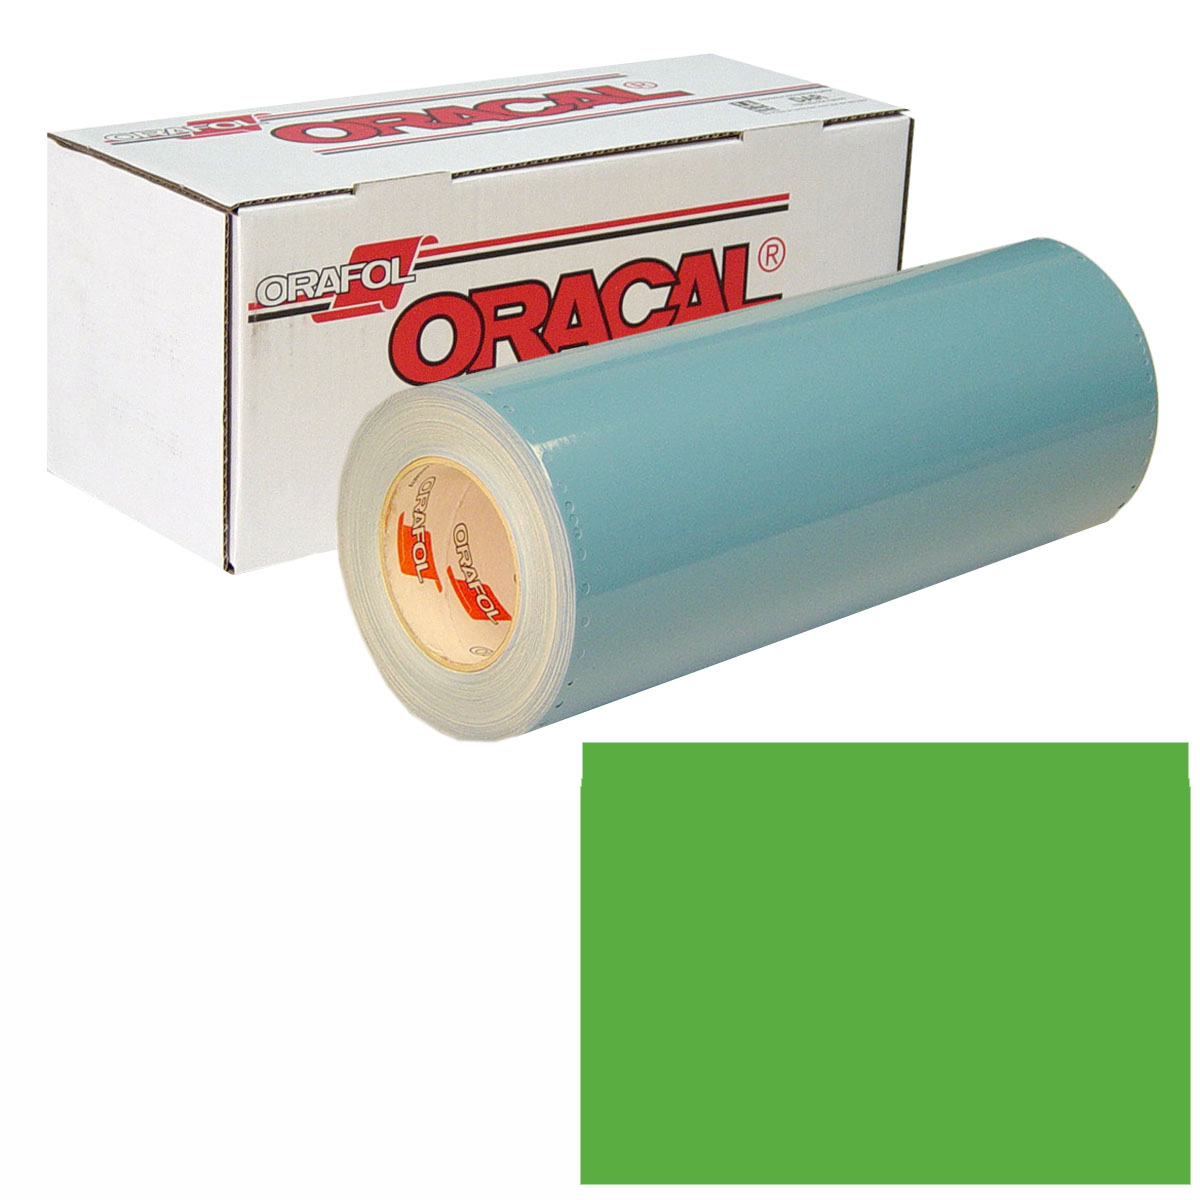 ORACAL 751 15In X 10Yd 063 Lime-Tree Green